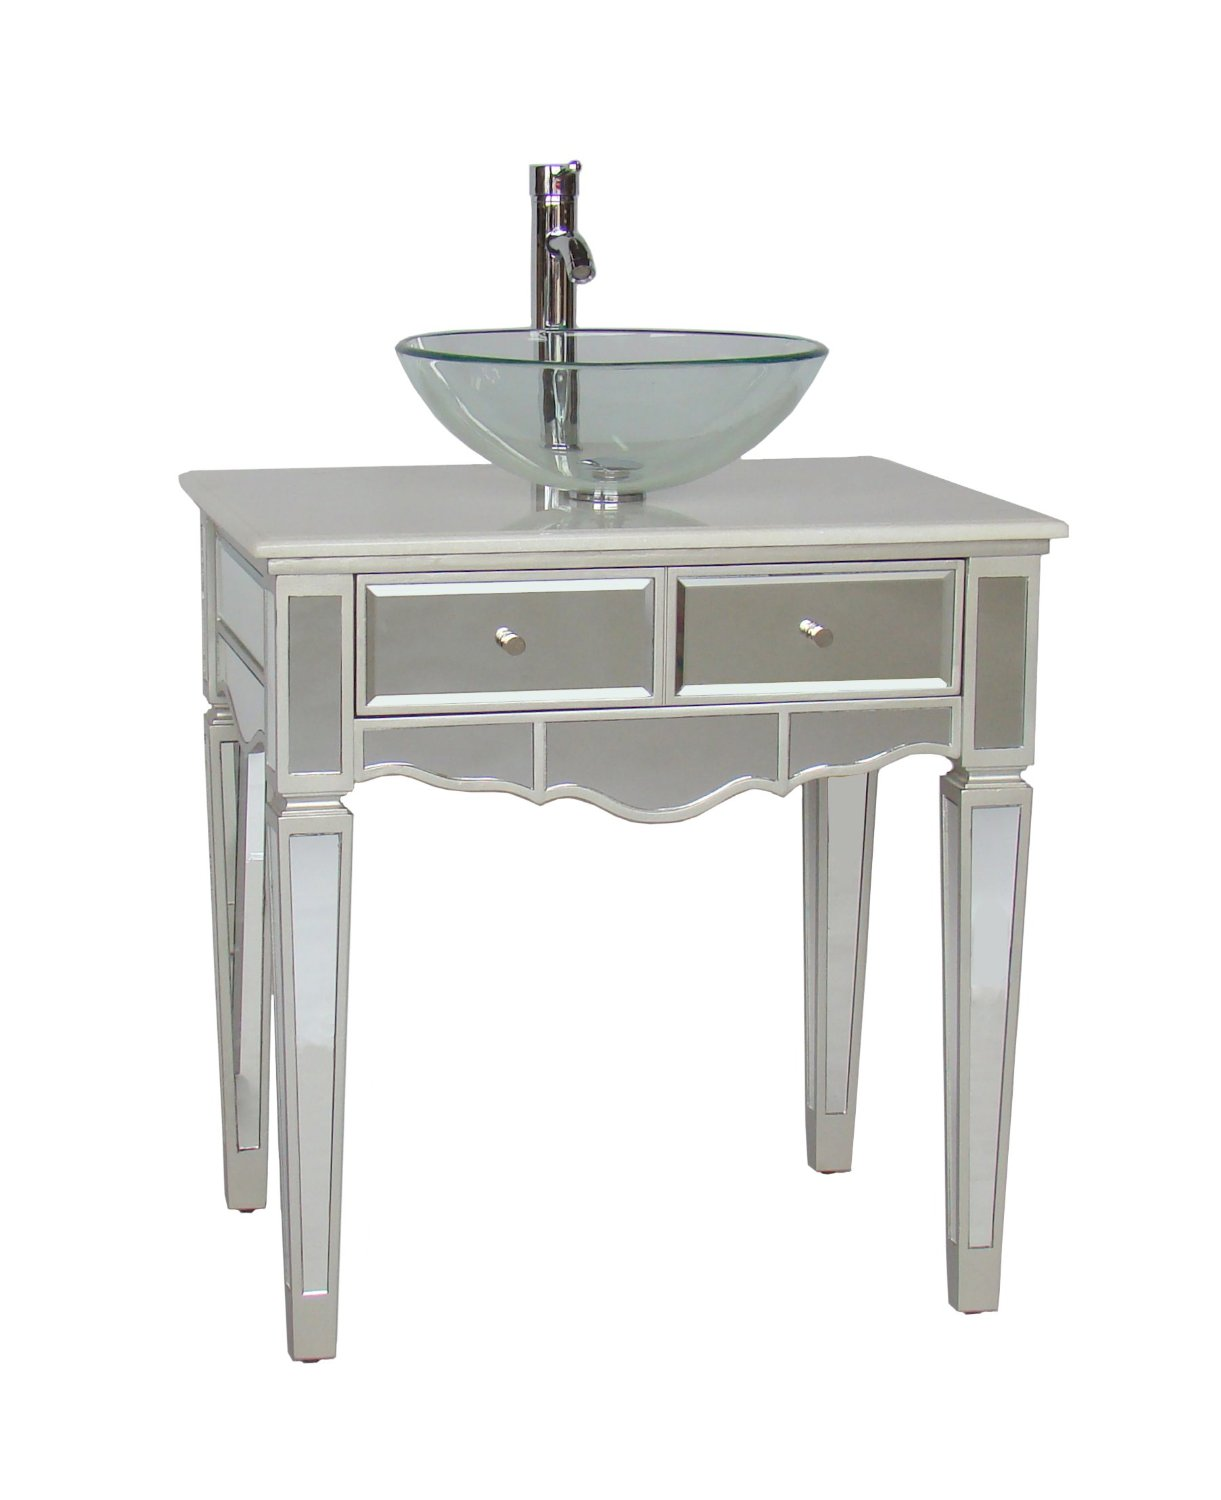 Adelina 30 inch Mirrored Vessel Sink Bathroom Vanity, White marble ...